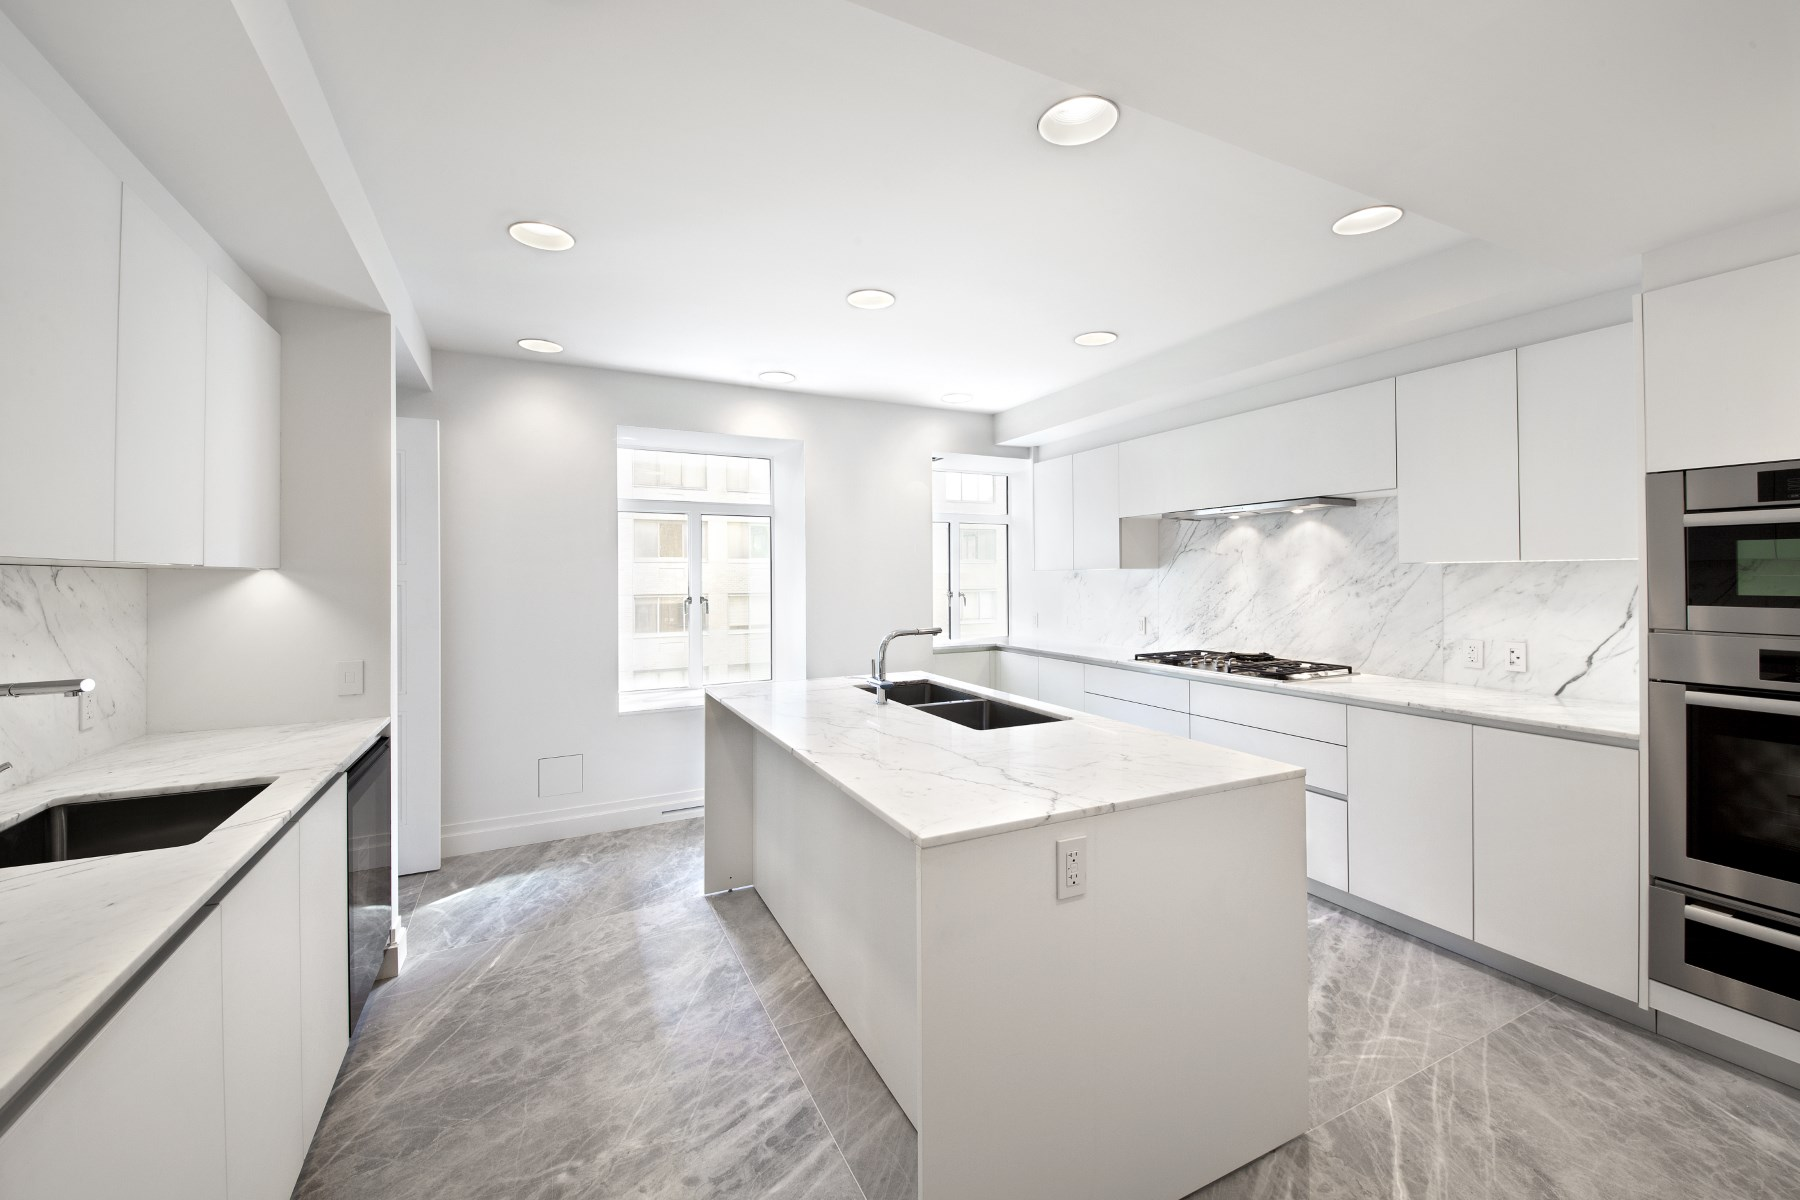 Condominium for Rent at Luxury Rental - Park Avenue Gold Coast 737 Park Avenue Apt 9a Upper East Side, New York, New York 10021 United States